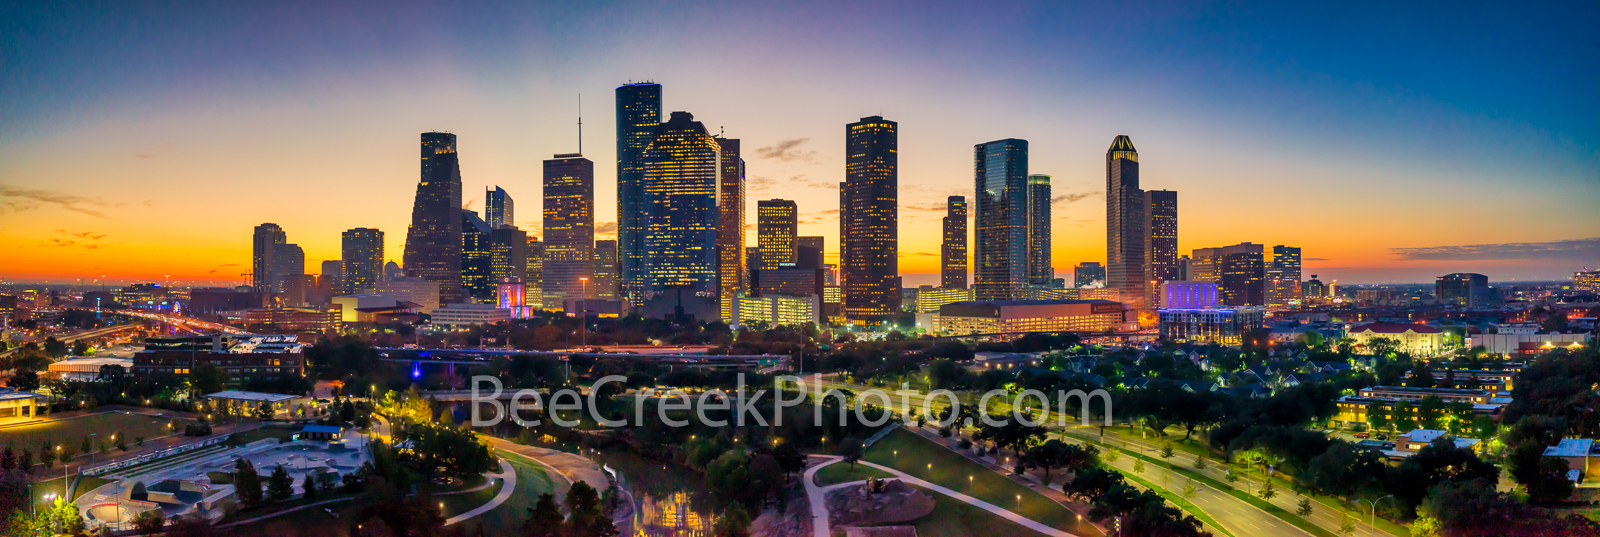 Houston skyline, Houston skyline pictures,  Houston skyline sunrise, Houston, glow,  sunrise, aerial, pano, panorama, Buffalo Bayou, skylines, Houston cityscape, cityscapes, downtown, reflections, pic, photo